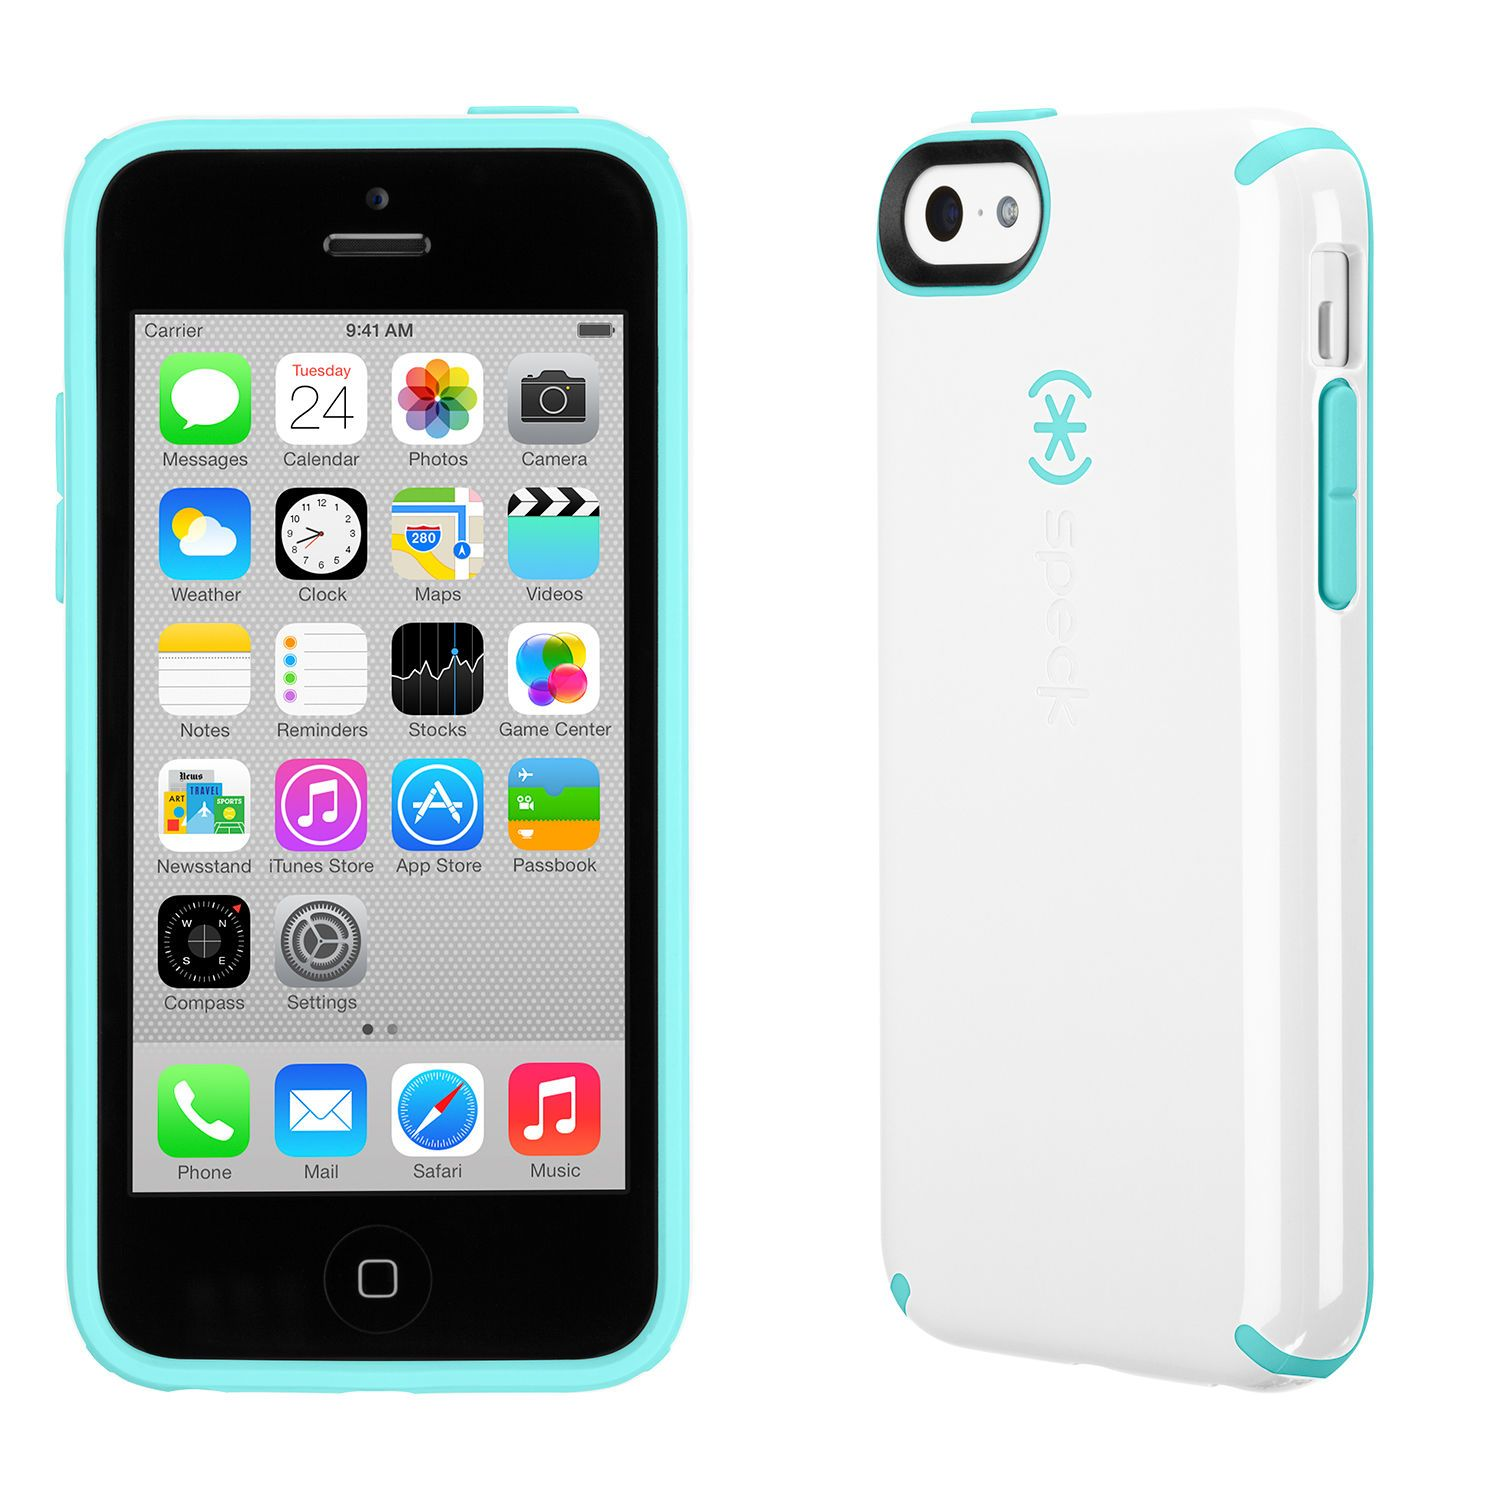 Candyshell iphone 5c cases iphone 5c cases phone case